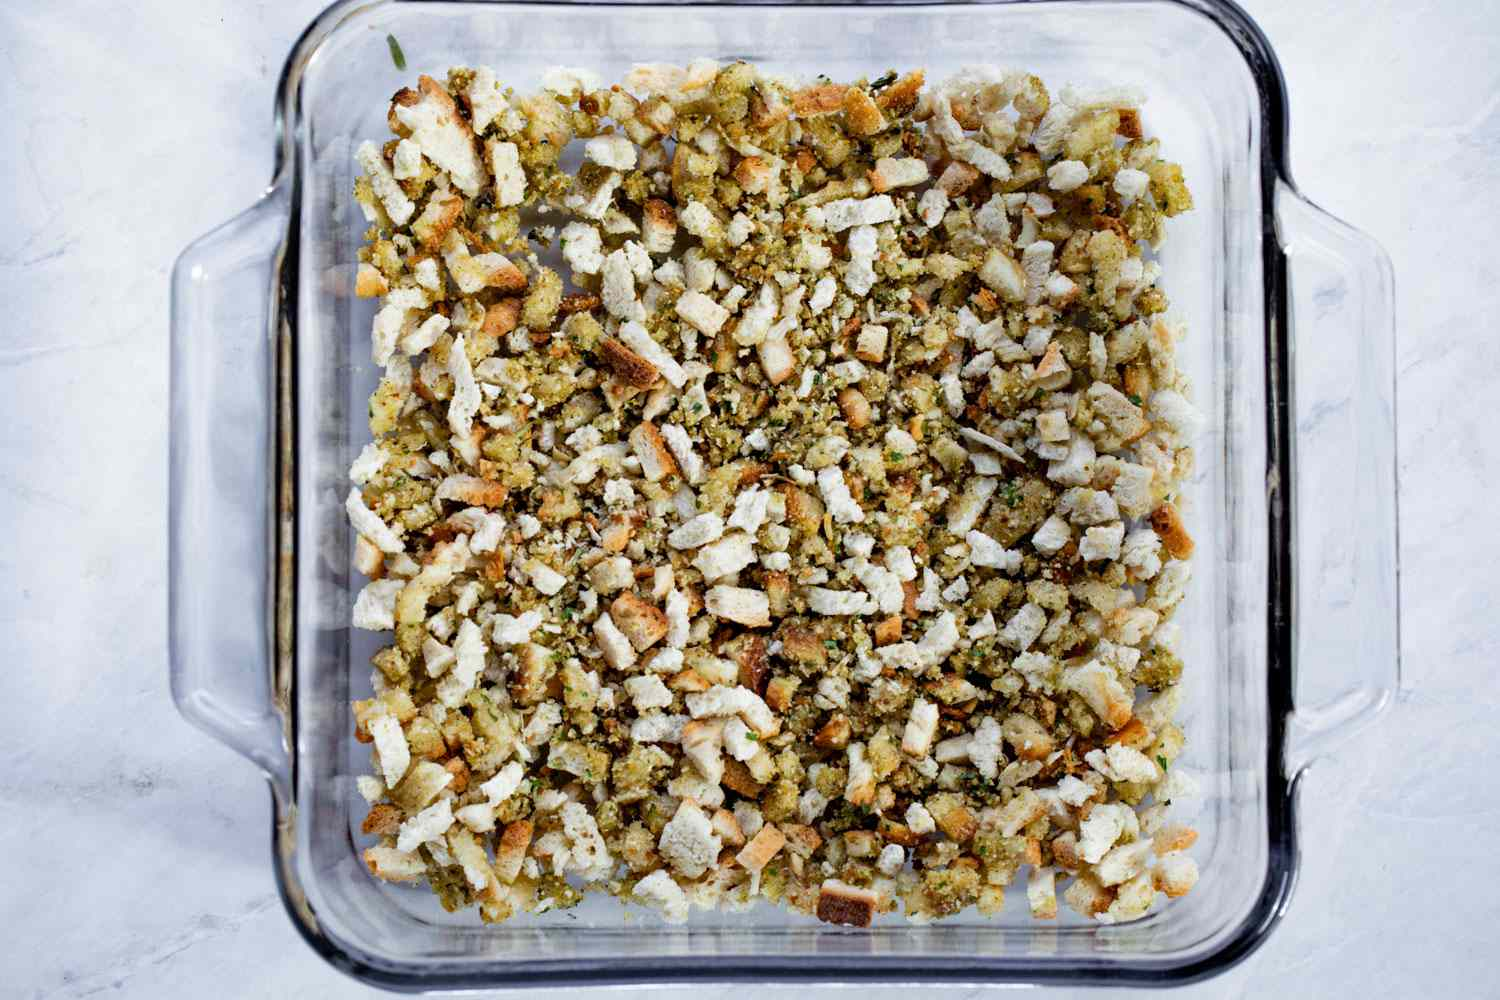 stuffing and vegetables in a baking dish